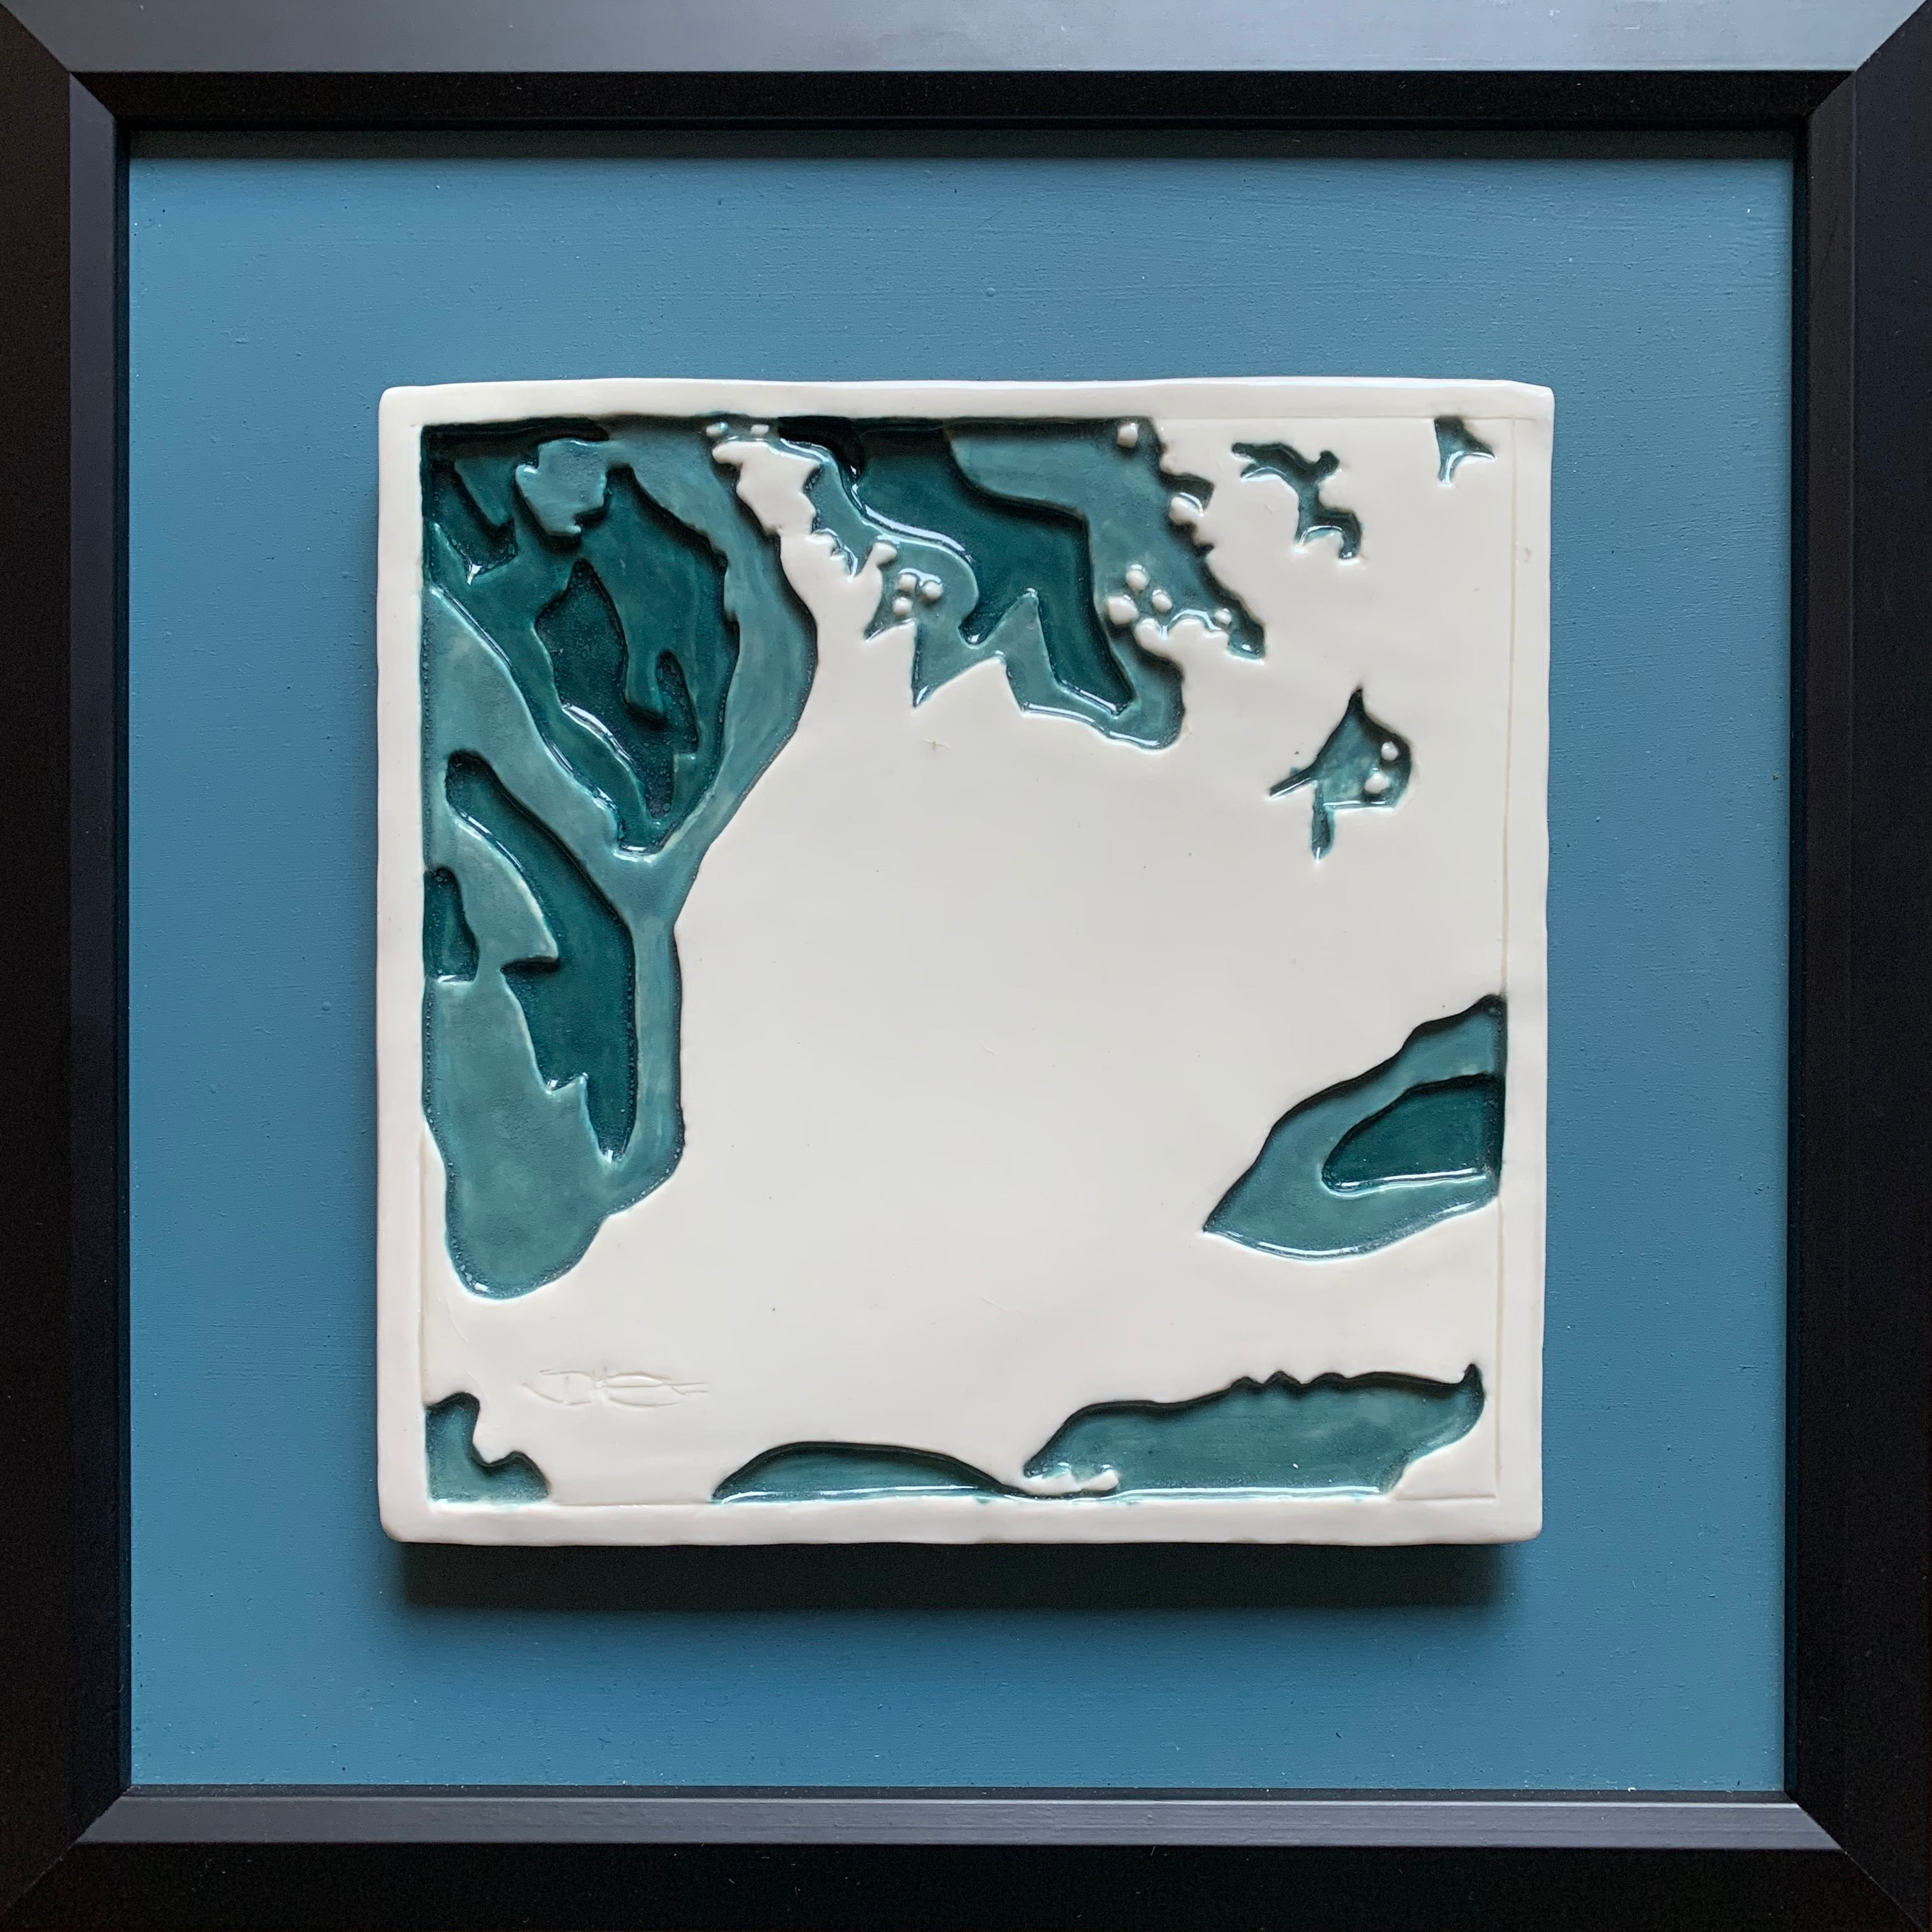 Made in Canada ceramic bathymetry tile art of Lake Huron, Georgian Bay, Lake Ontario,  Erie and Simcoe. White tile on blue backing in black frame.